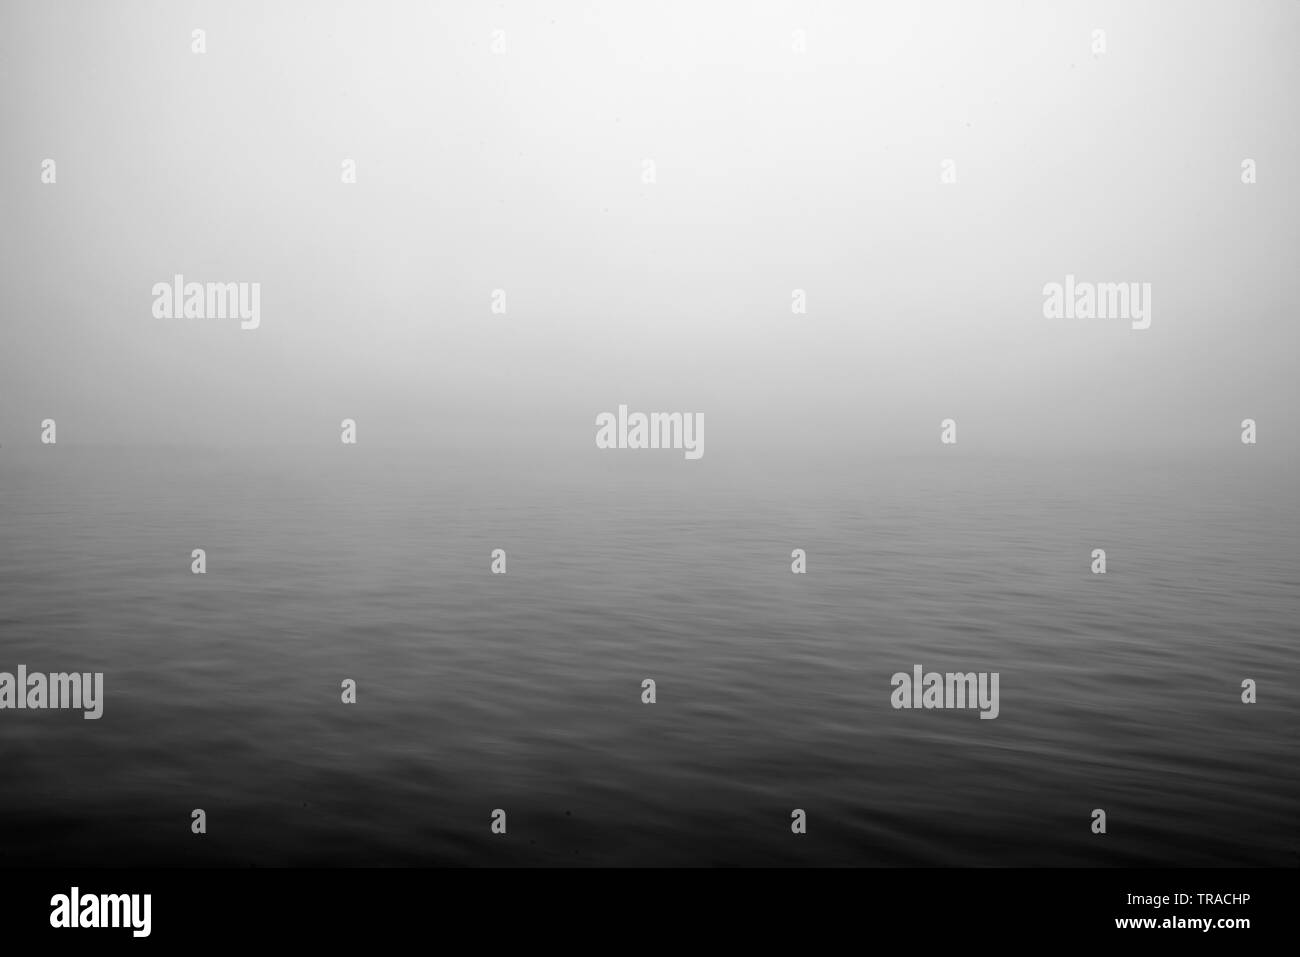 Stunning abstract shot of early moring fog hanging over the water of a lake giving it bad visibility - Stock Image